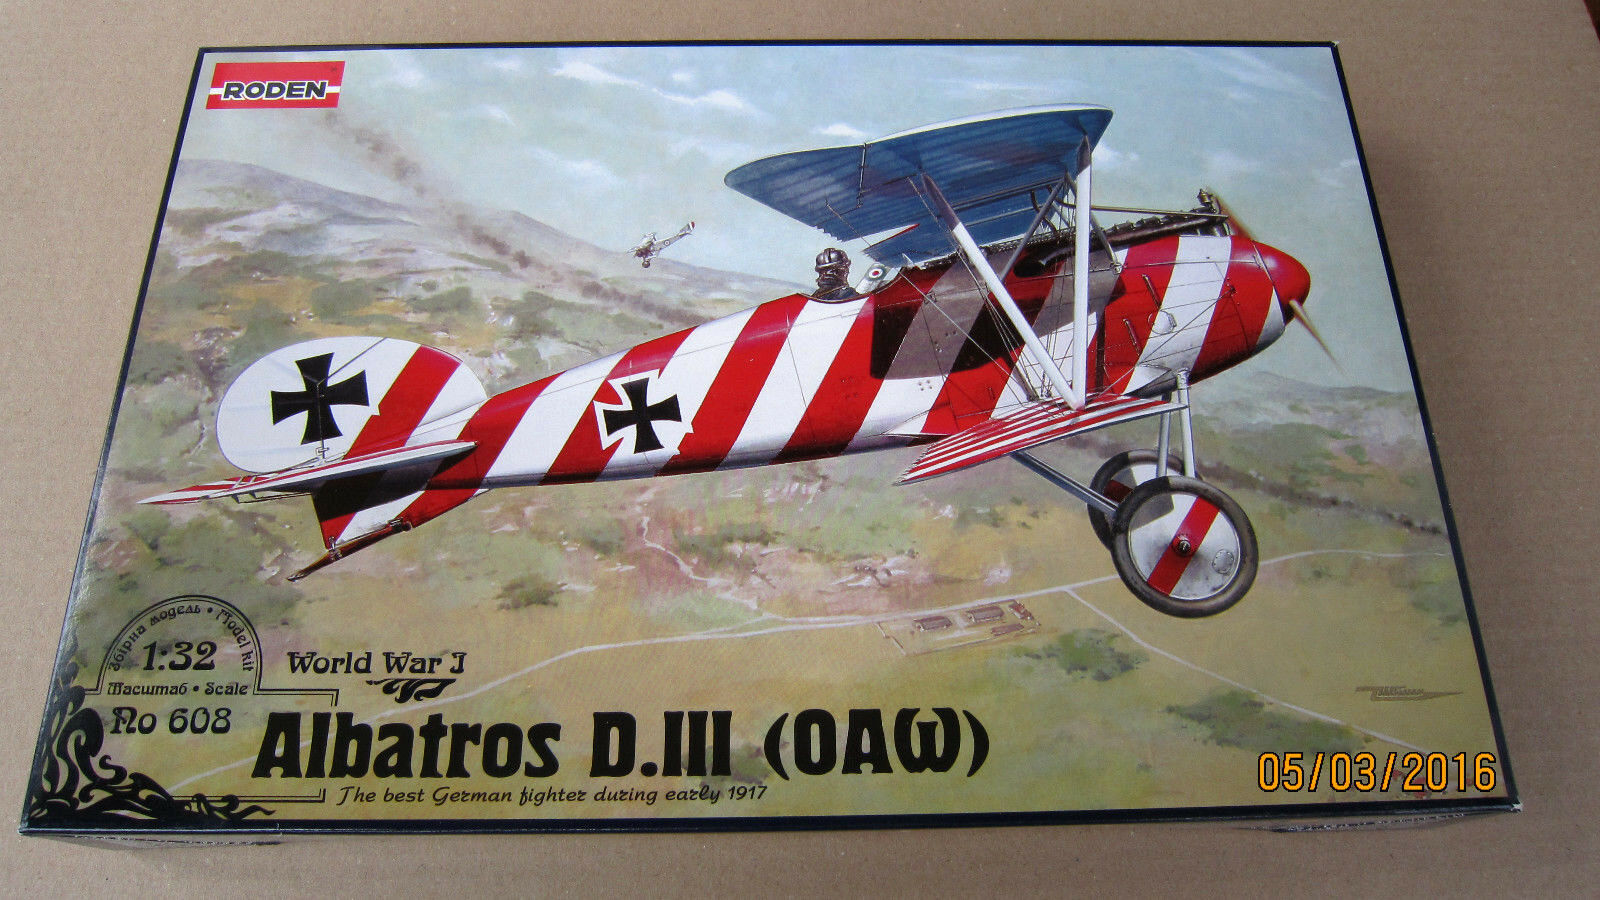 Albatros D.III (OAW) fighter WWI model kit    1 32  Roden